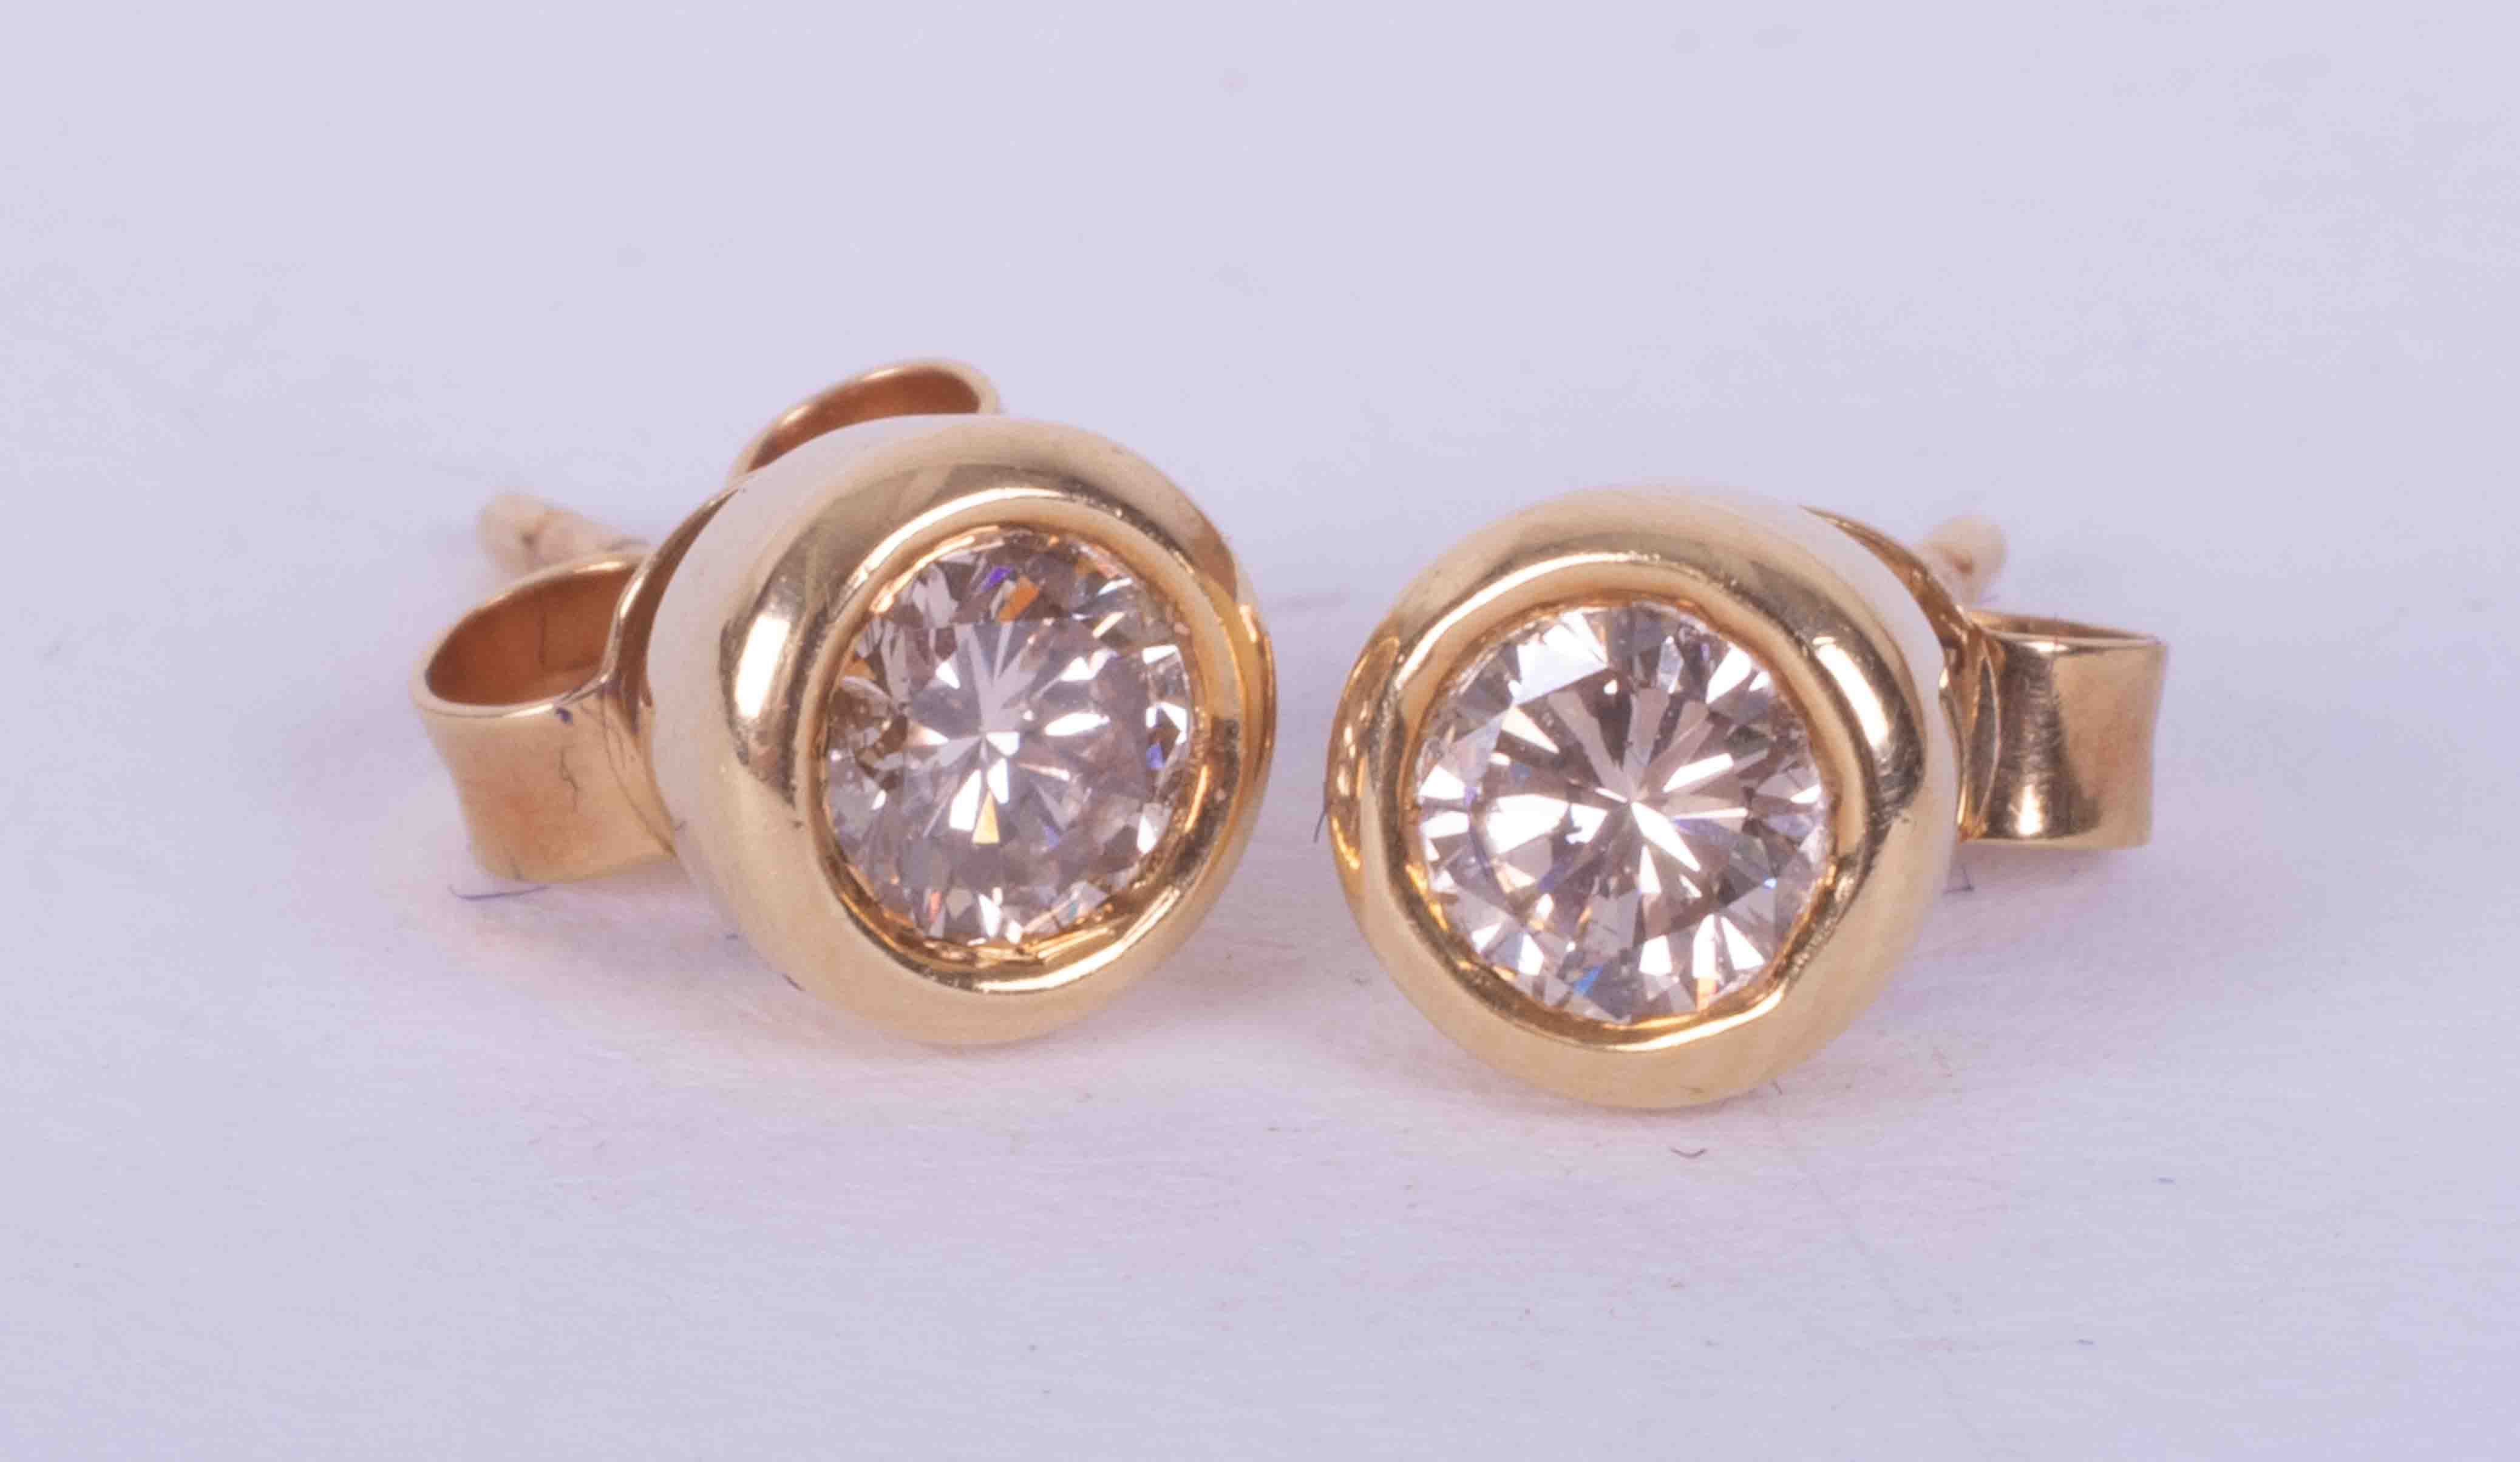 A pair of 18ct yellow gold rub over studs set a total weight of 0.50 carats of round brilliant cut